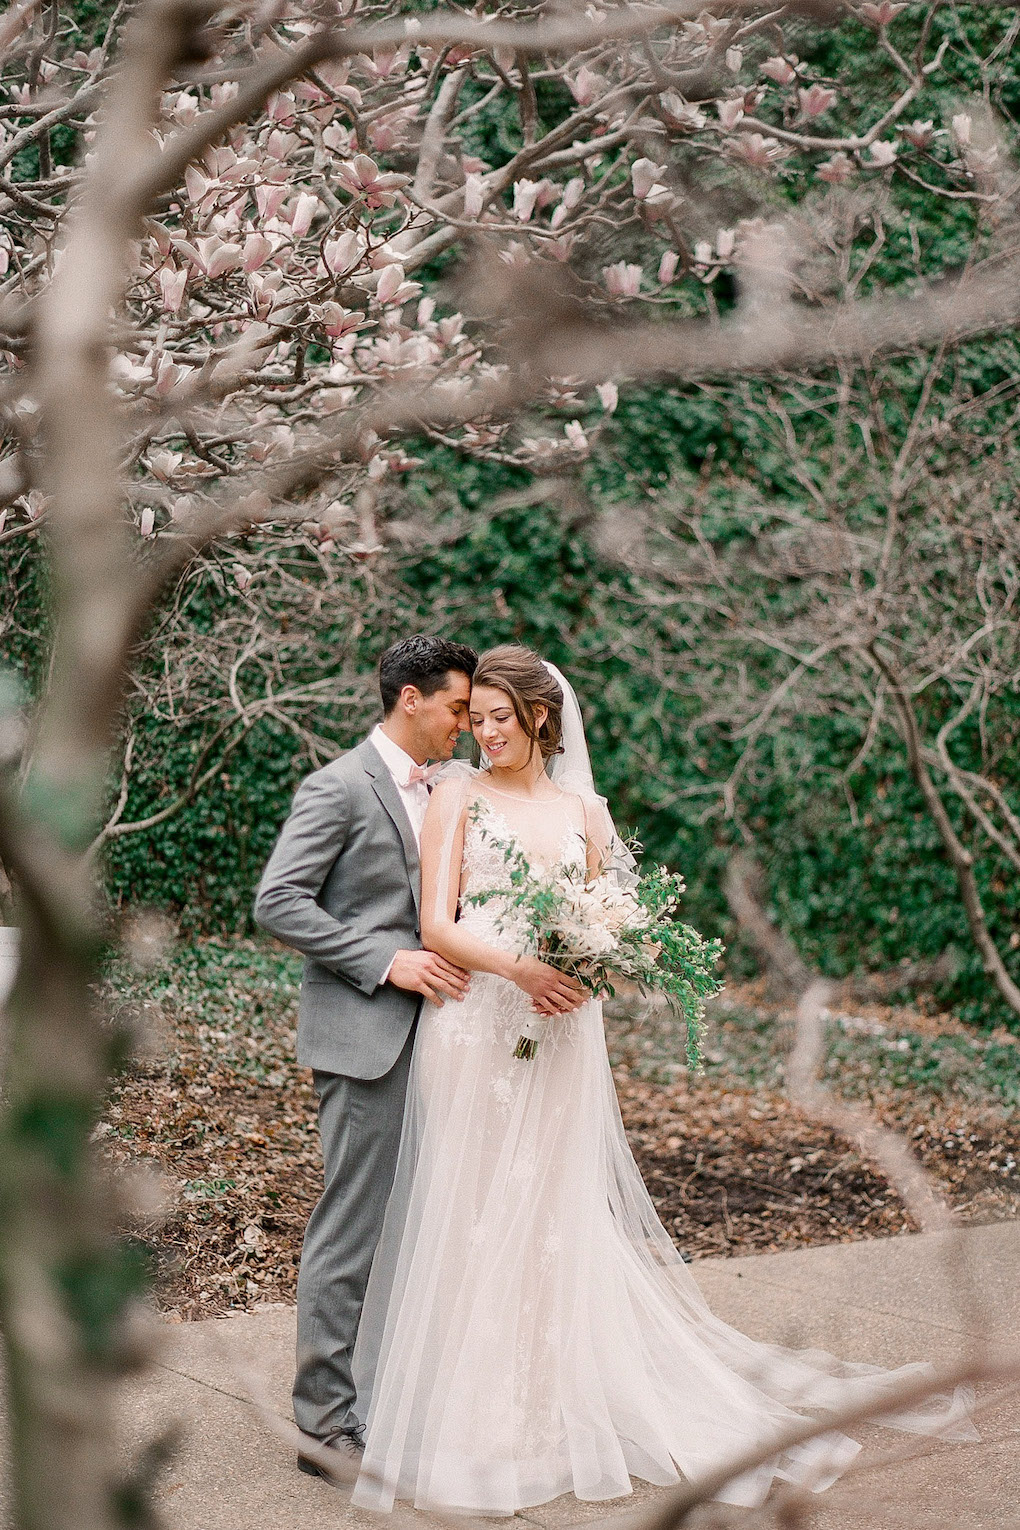 Magnolia Garden wedding photos in Pittsburgh:Soft and Subtle Palettes of Spring Blossoms | Editorial Shoot at The Renaissance Pittsburgh by Exhale Events. See more inspiration at exhale-events.com!